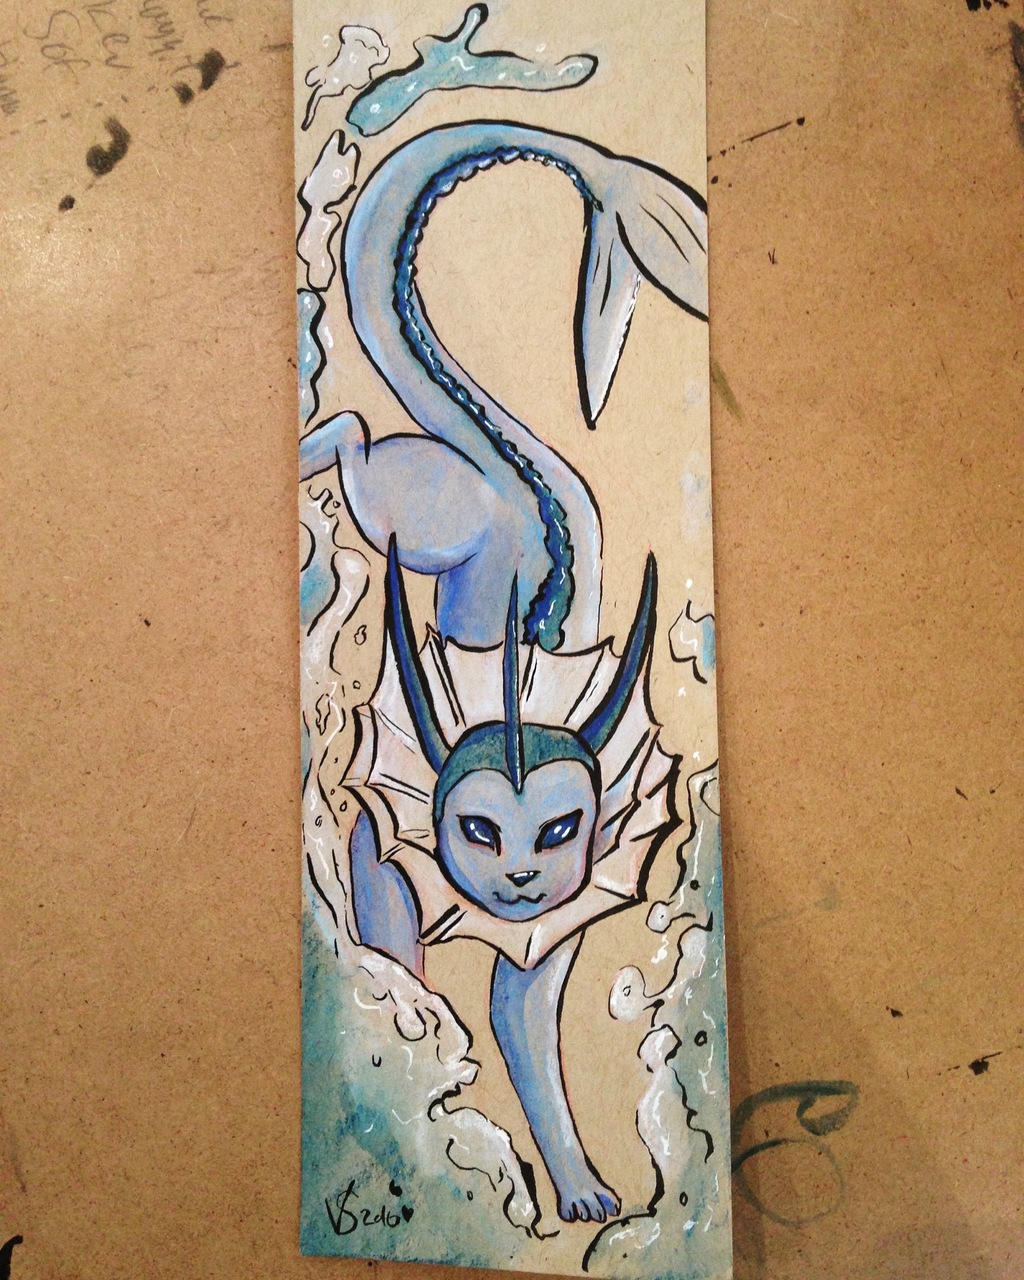 Most recent image: Vaporeon custom bookmark